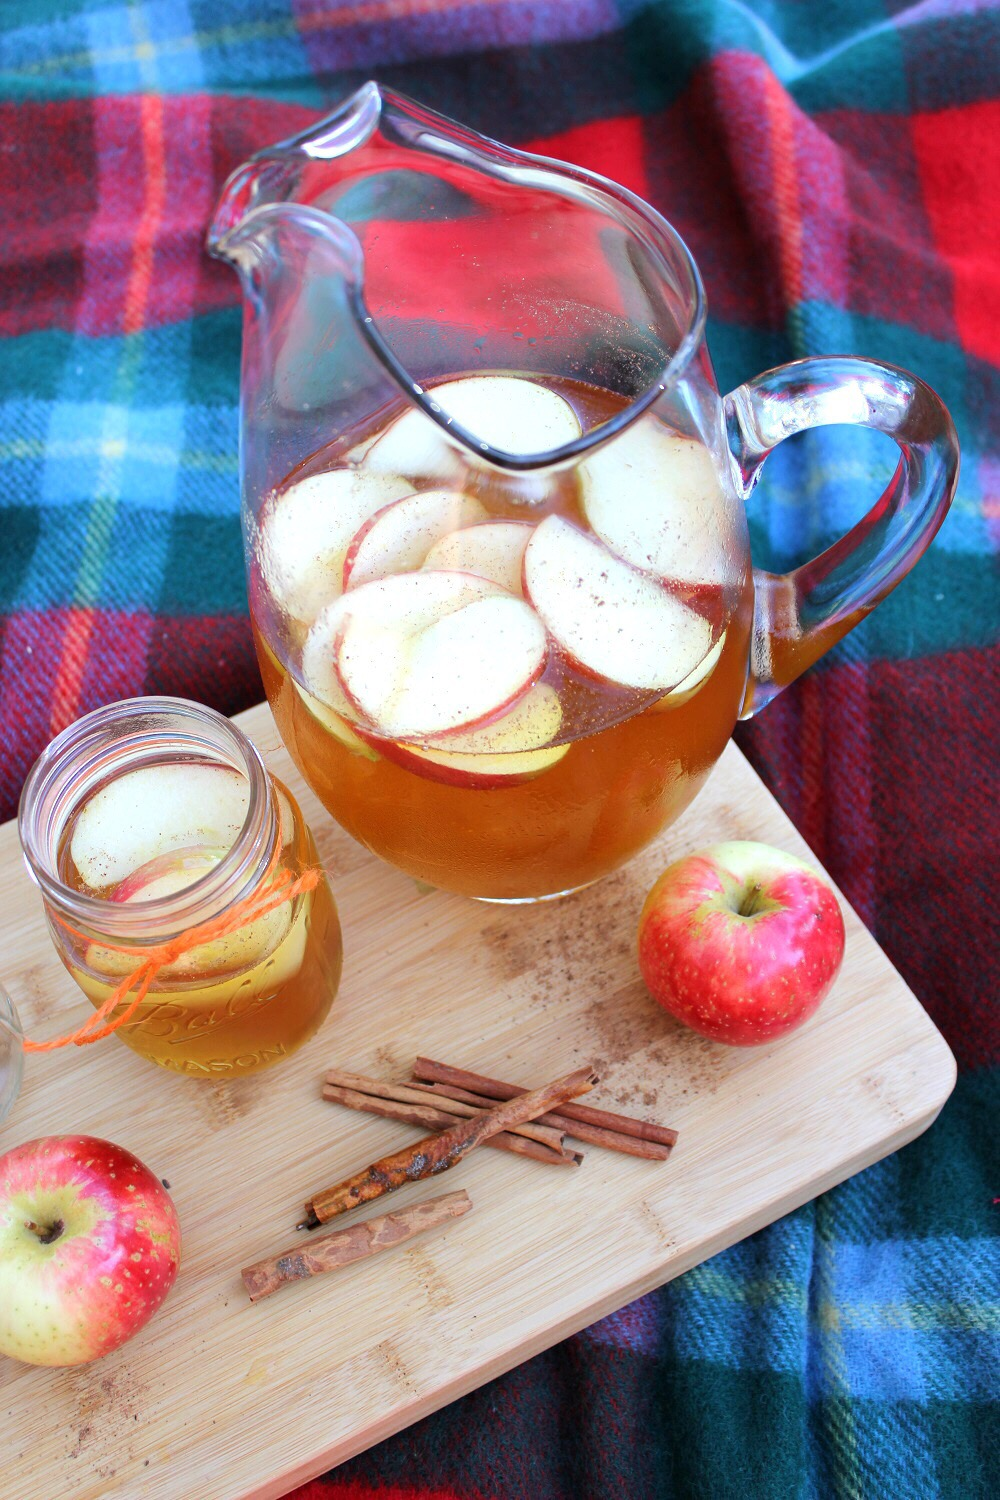 Old Apple Pie Sangria Caramel Apple Pie Sangria Tipsy Bartender Apple Pie Sangria So I Simply Created My Own Based Around Ginger Ale Produce Section Right Shining Apples Justbegging That Is All You Se nice food Apple Pie Sangria